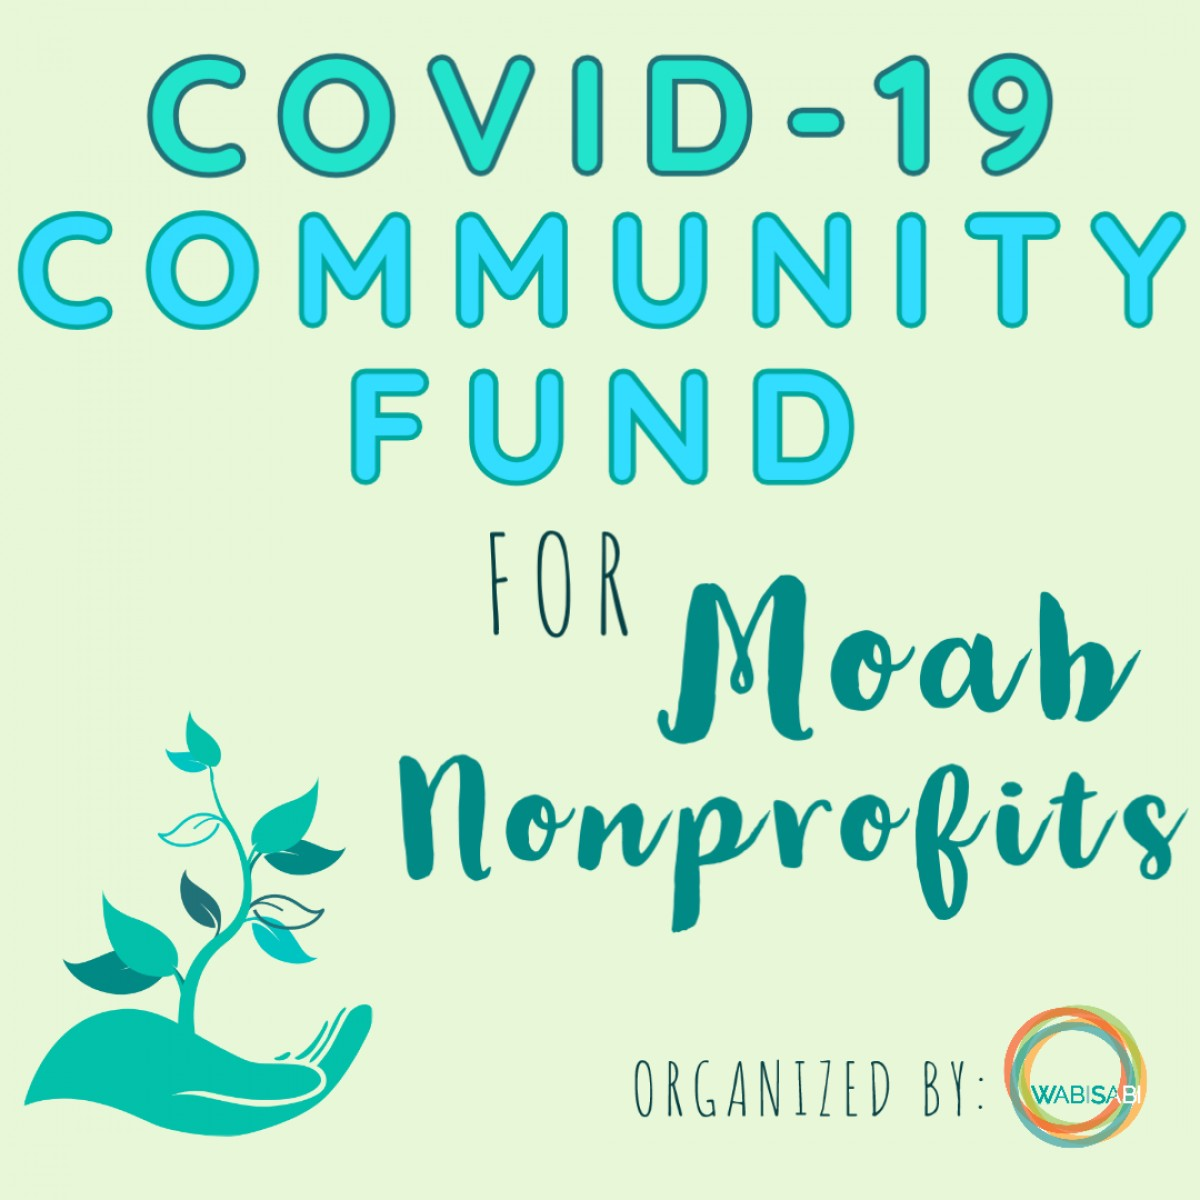 COVID-19 Community Fund for Nonprofits